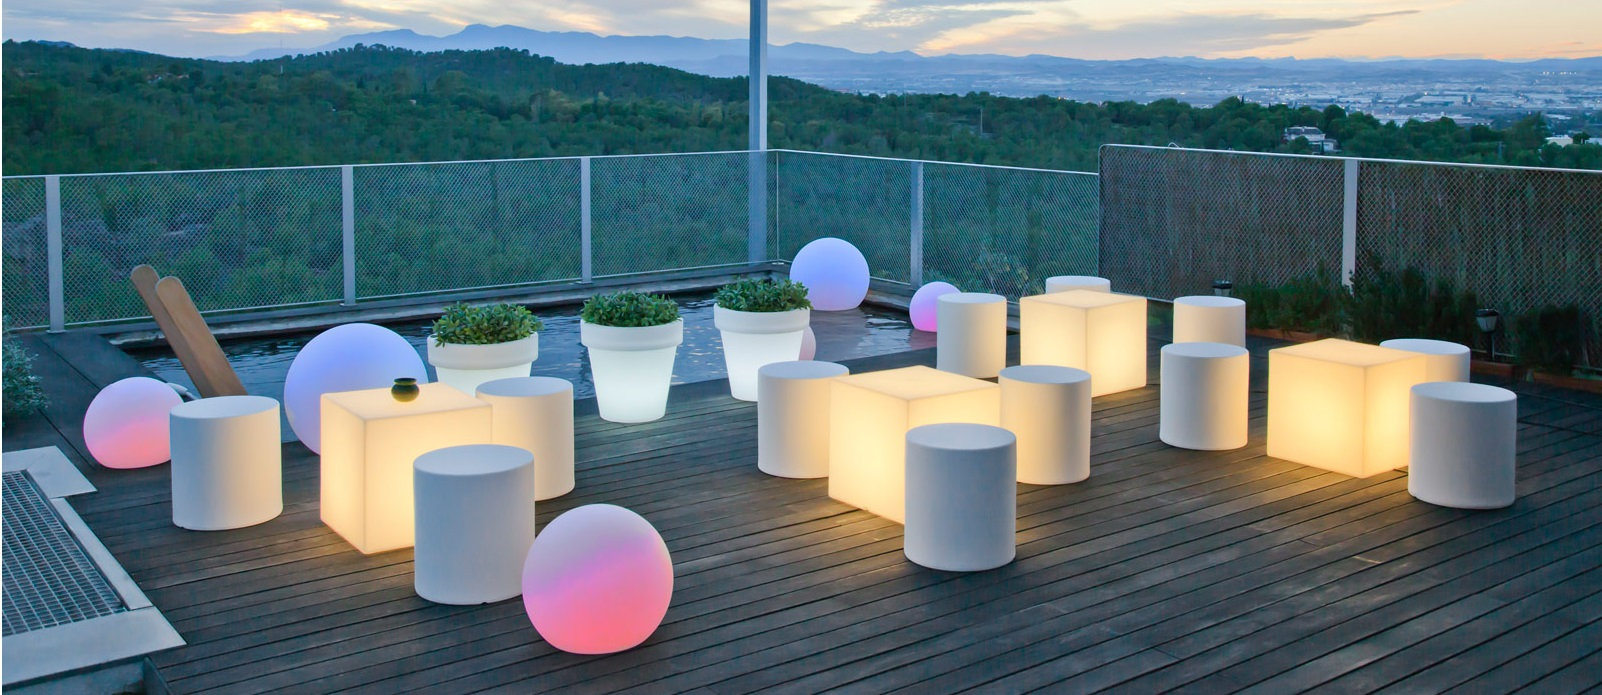 Decoraci n de jardines con muebles led blog for Led para jardin